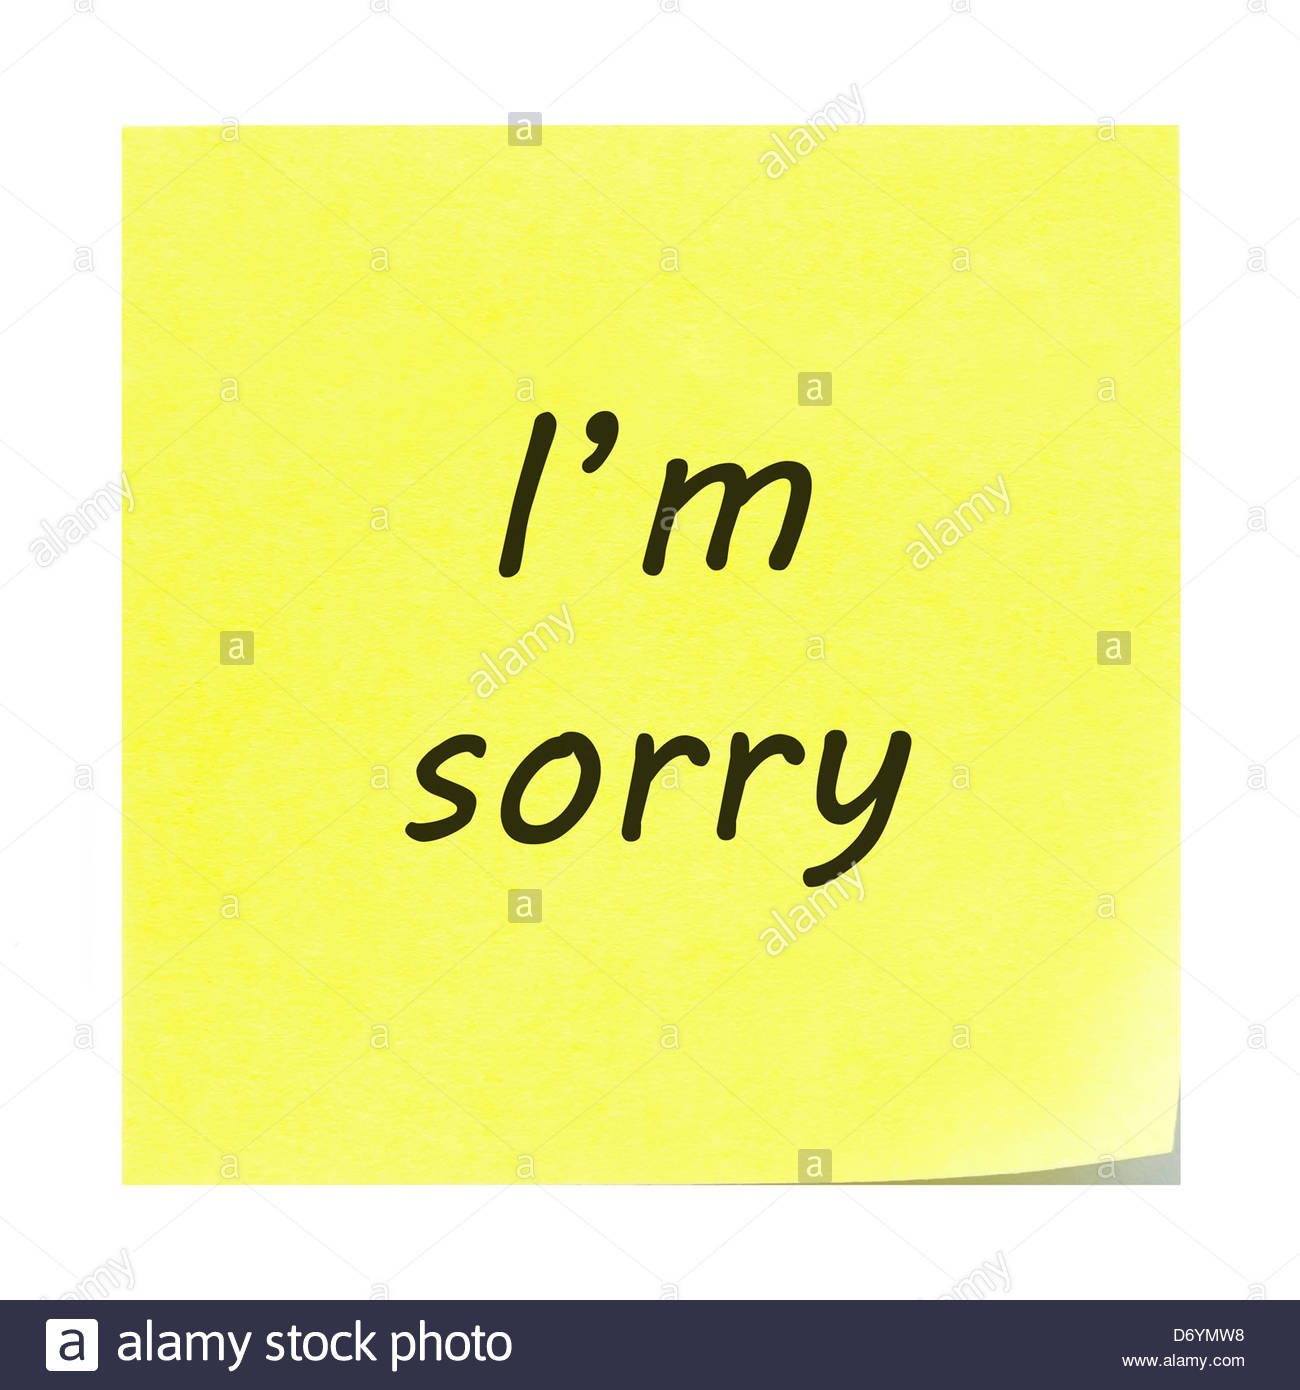 Im sorry written on a yellow sticky note post it note with the im sorry written on a yellow sticky note post it note with the corner peeling up altavistaventures Choice Image